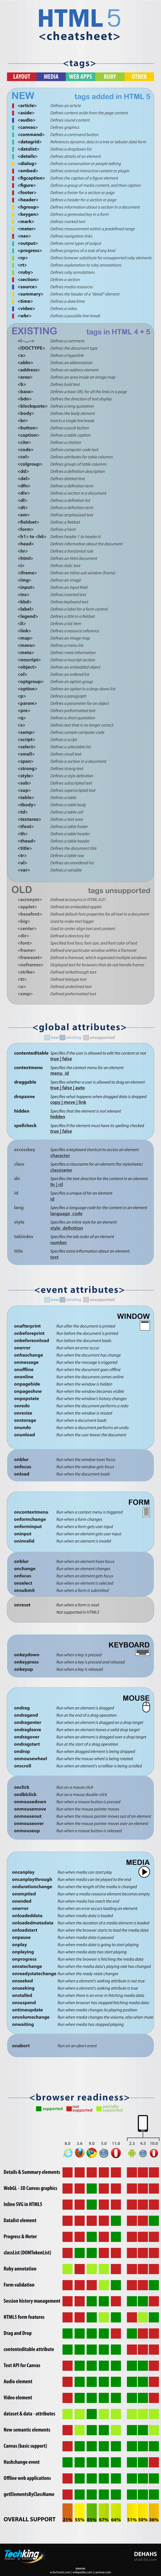 Html5 Tags Attributes & Browser Support Cheatsheet